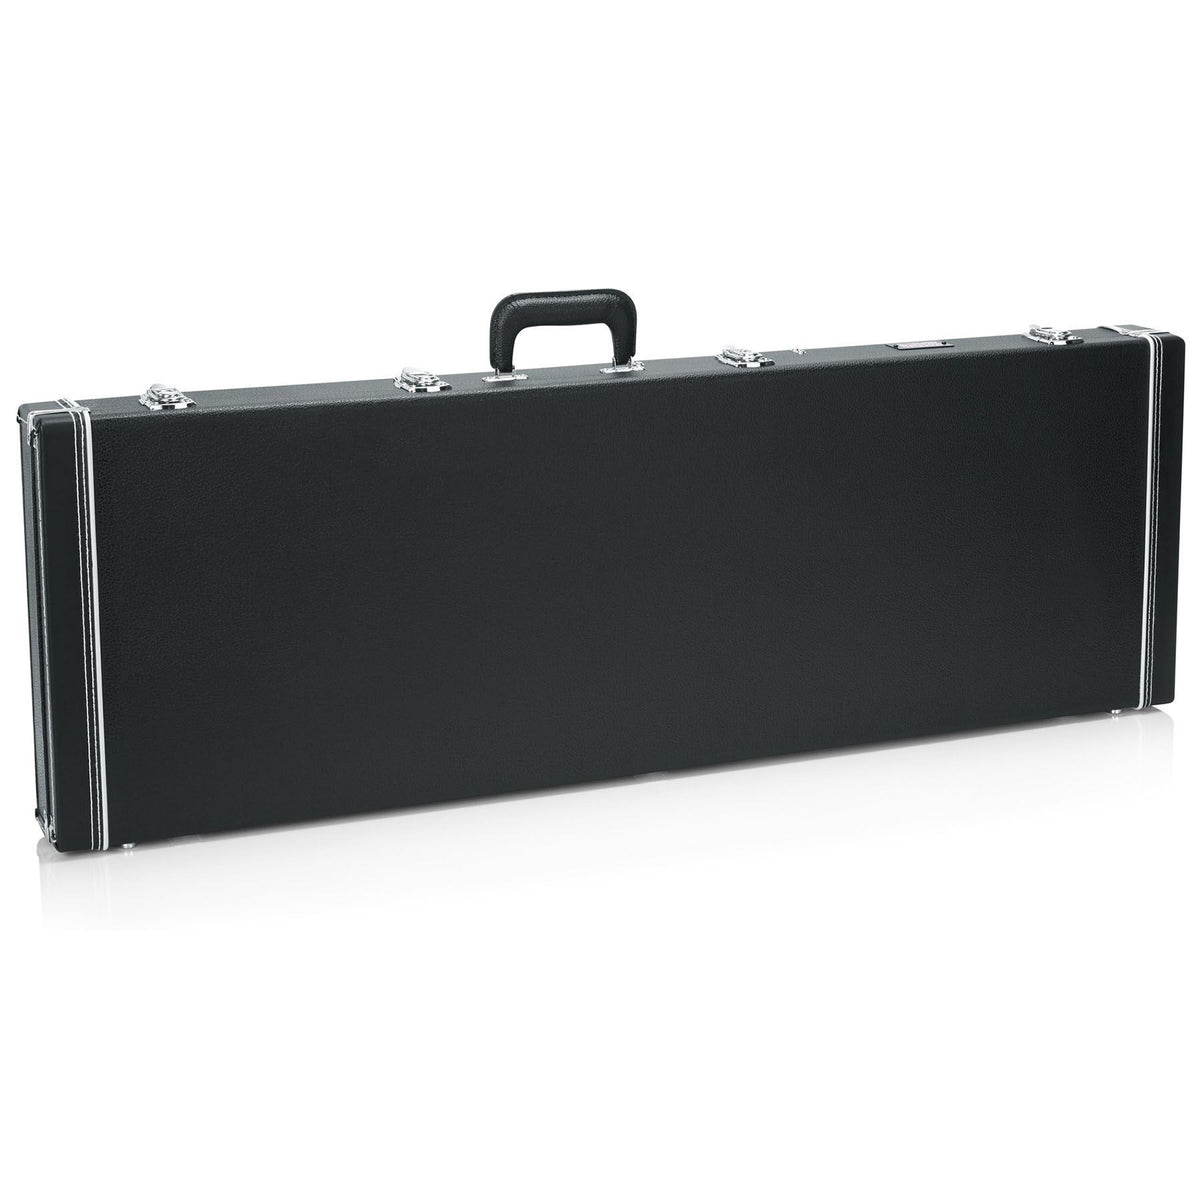 Gator Cases Deluxe Wood Case for Fender Squier Vintage Modified Fretless Jazz Bass Guitars